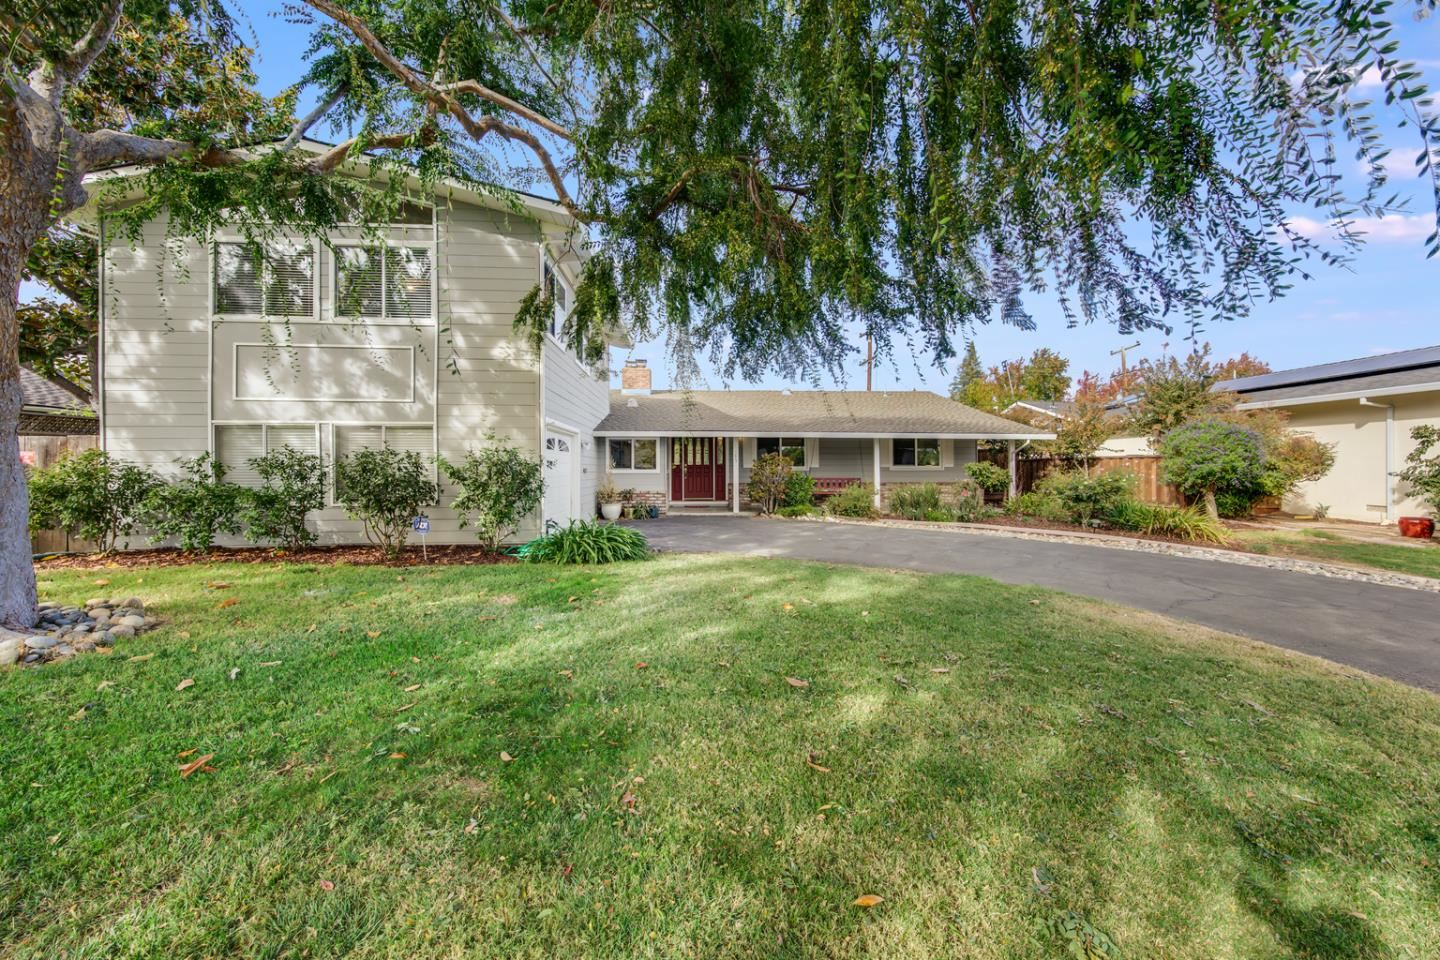 Photo for 1085 Valley Forge Drive, SUNNYVALE, CA 94087 (MLS # ML81863778)